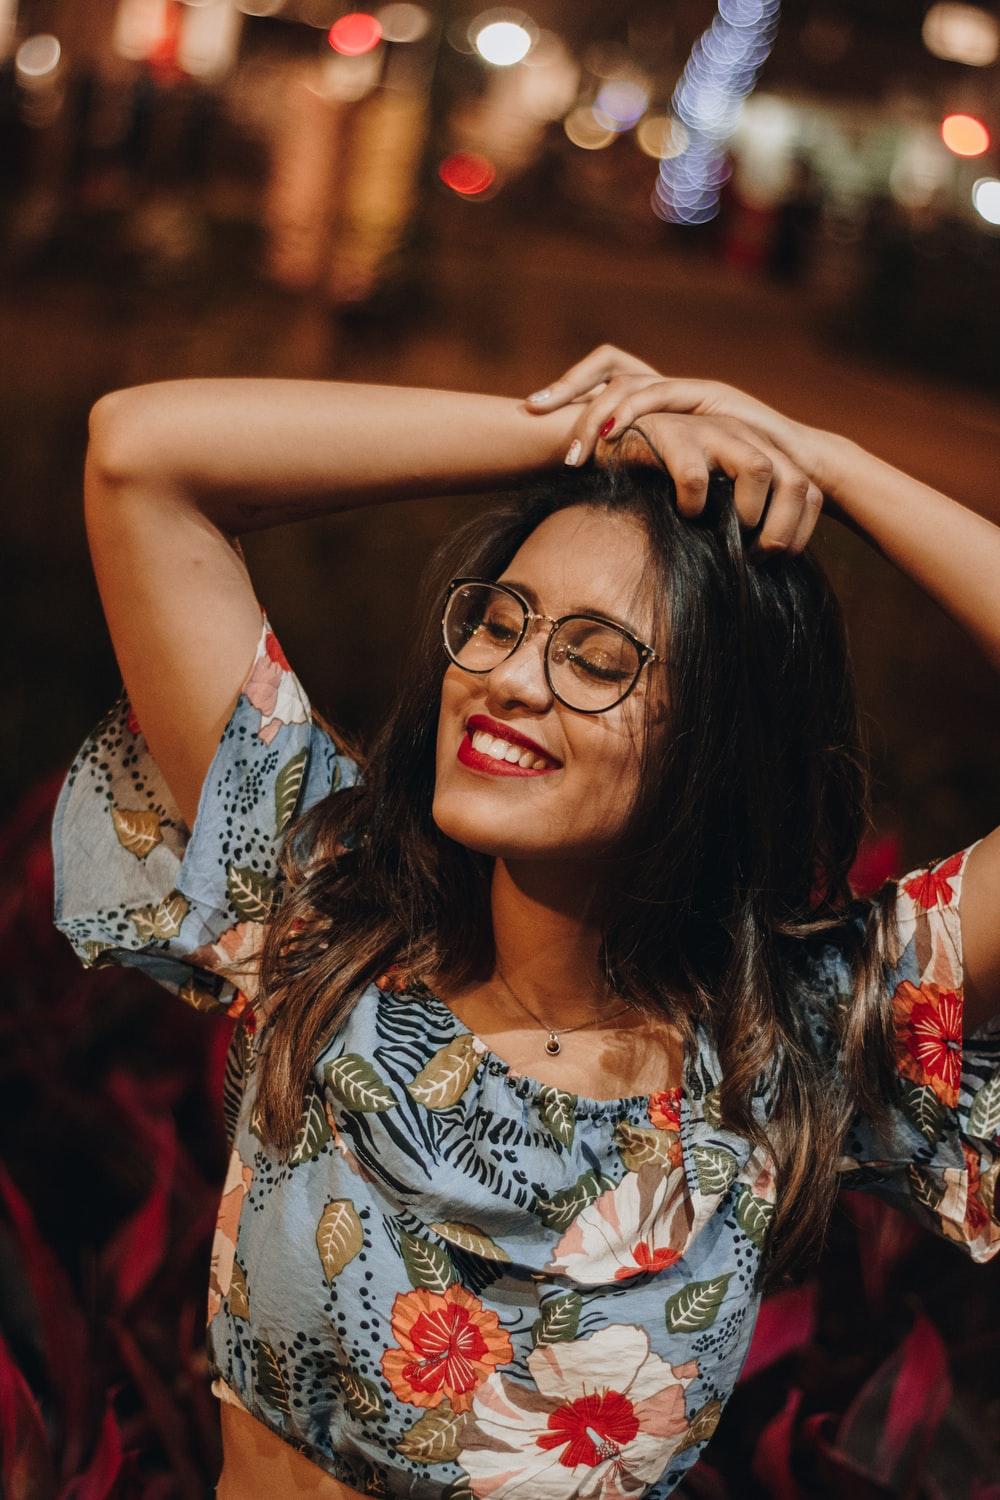 woman in white red and blue floral sleeveless top wearing black framed eyeglasses